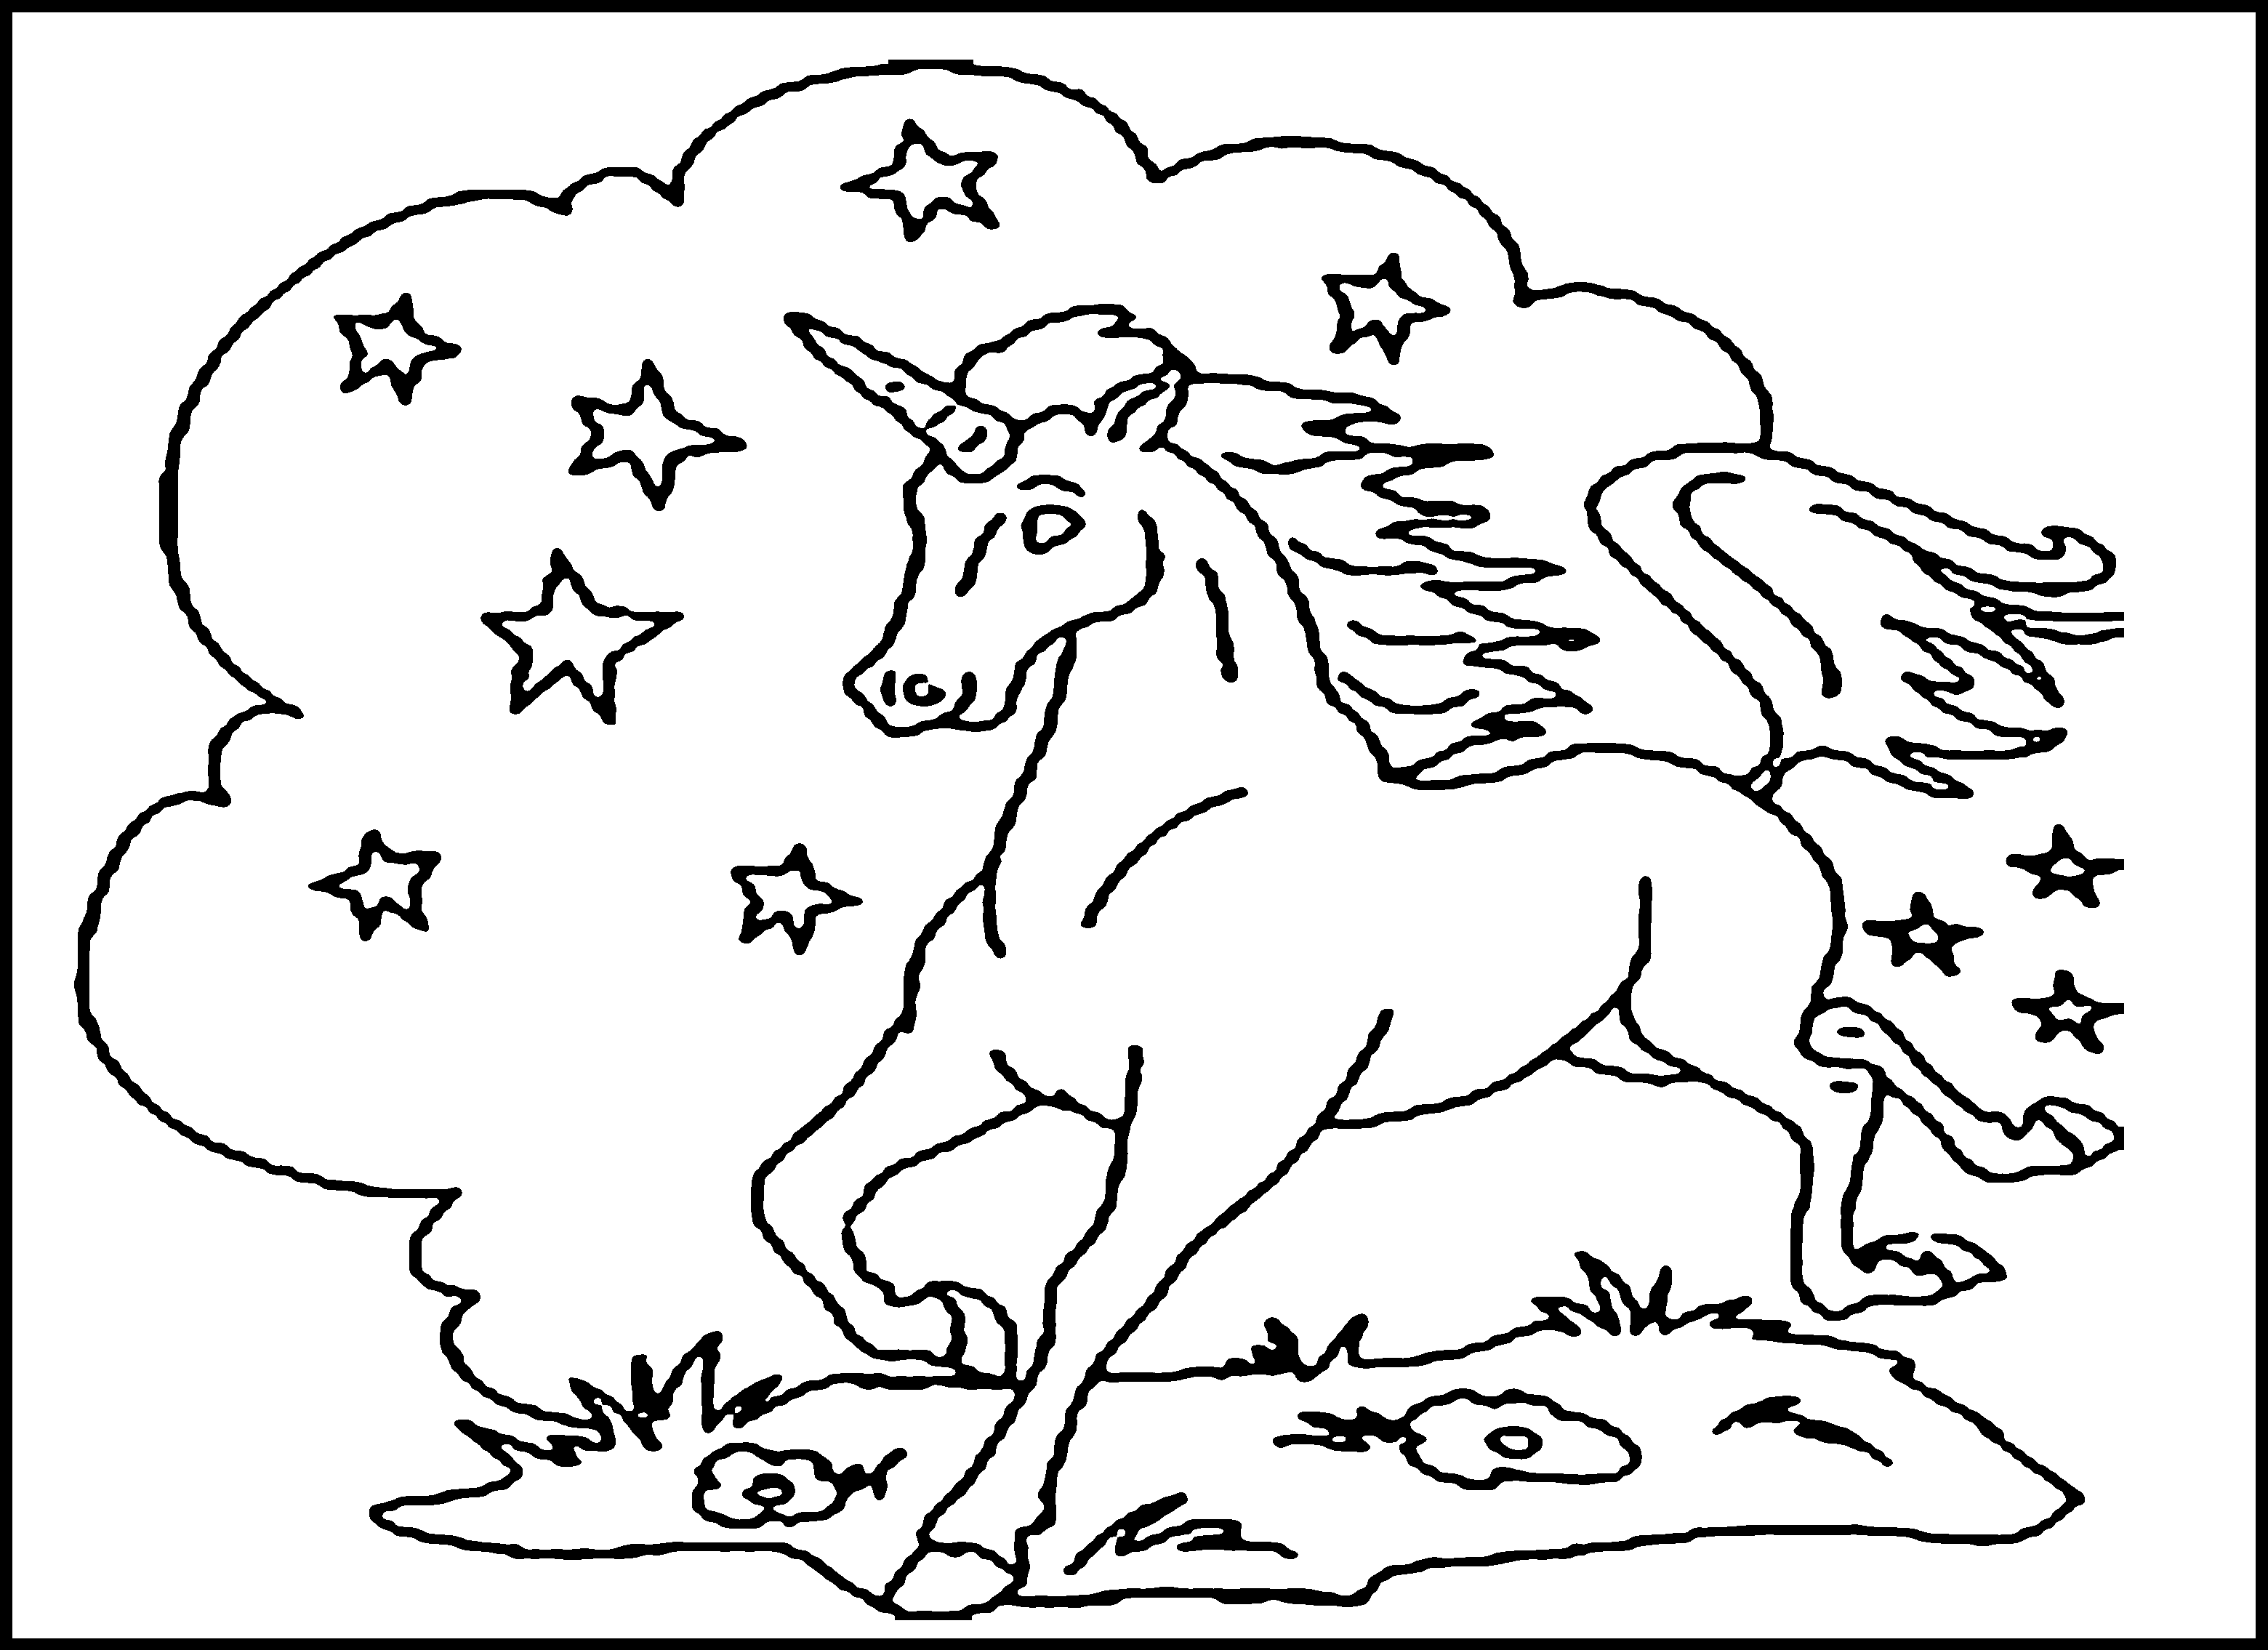 unicorn printable coloring pages - Print Colouring Pages